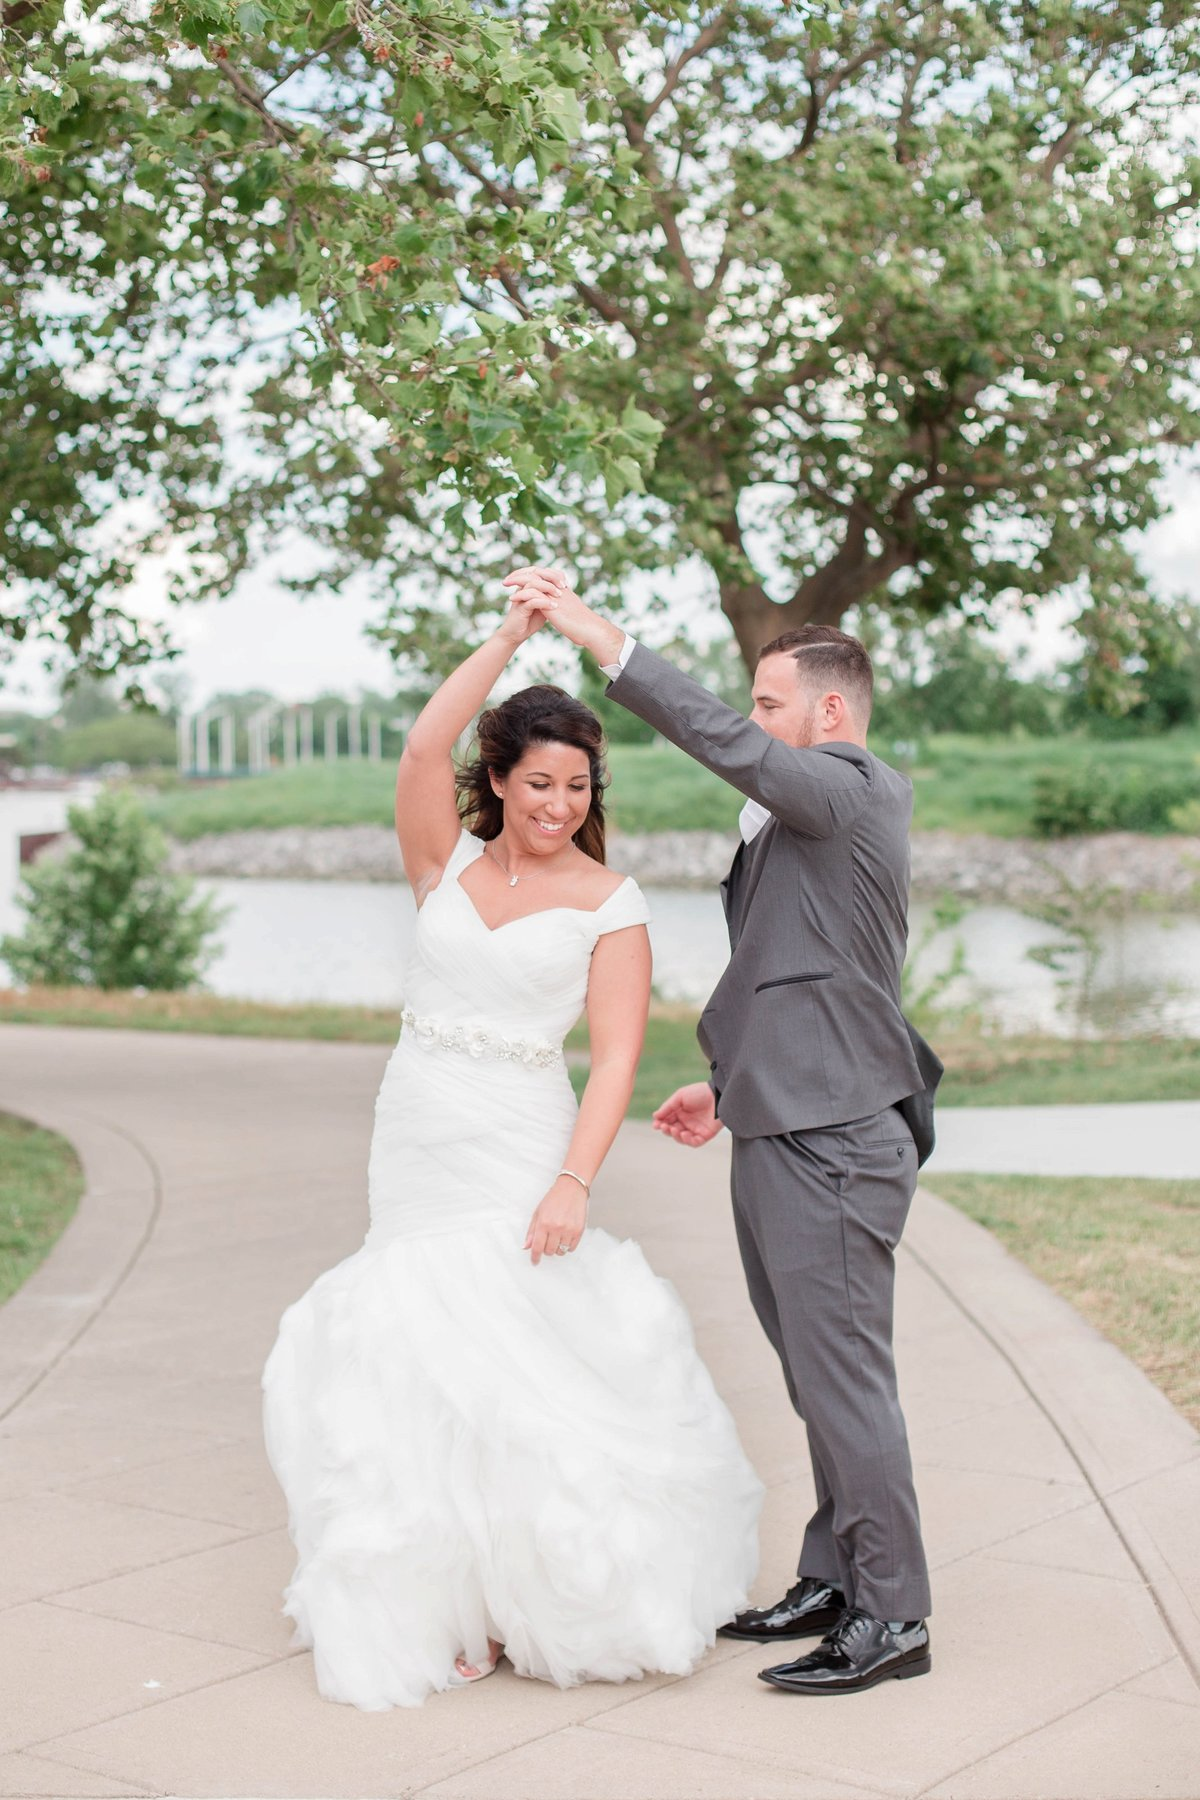 Baby Powder Blue and Blush Summer Park Inn Wedding with First Look by Toledo and Detroit Based Wedding Photographers Kent & Stephanie Photography_1032